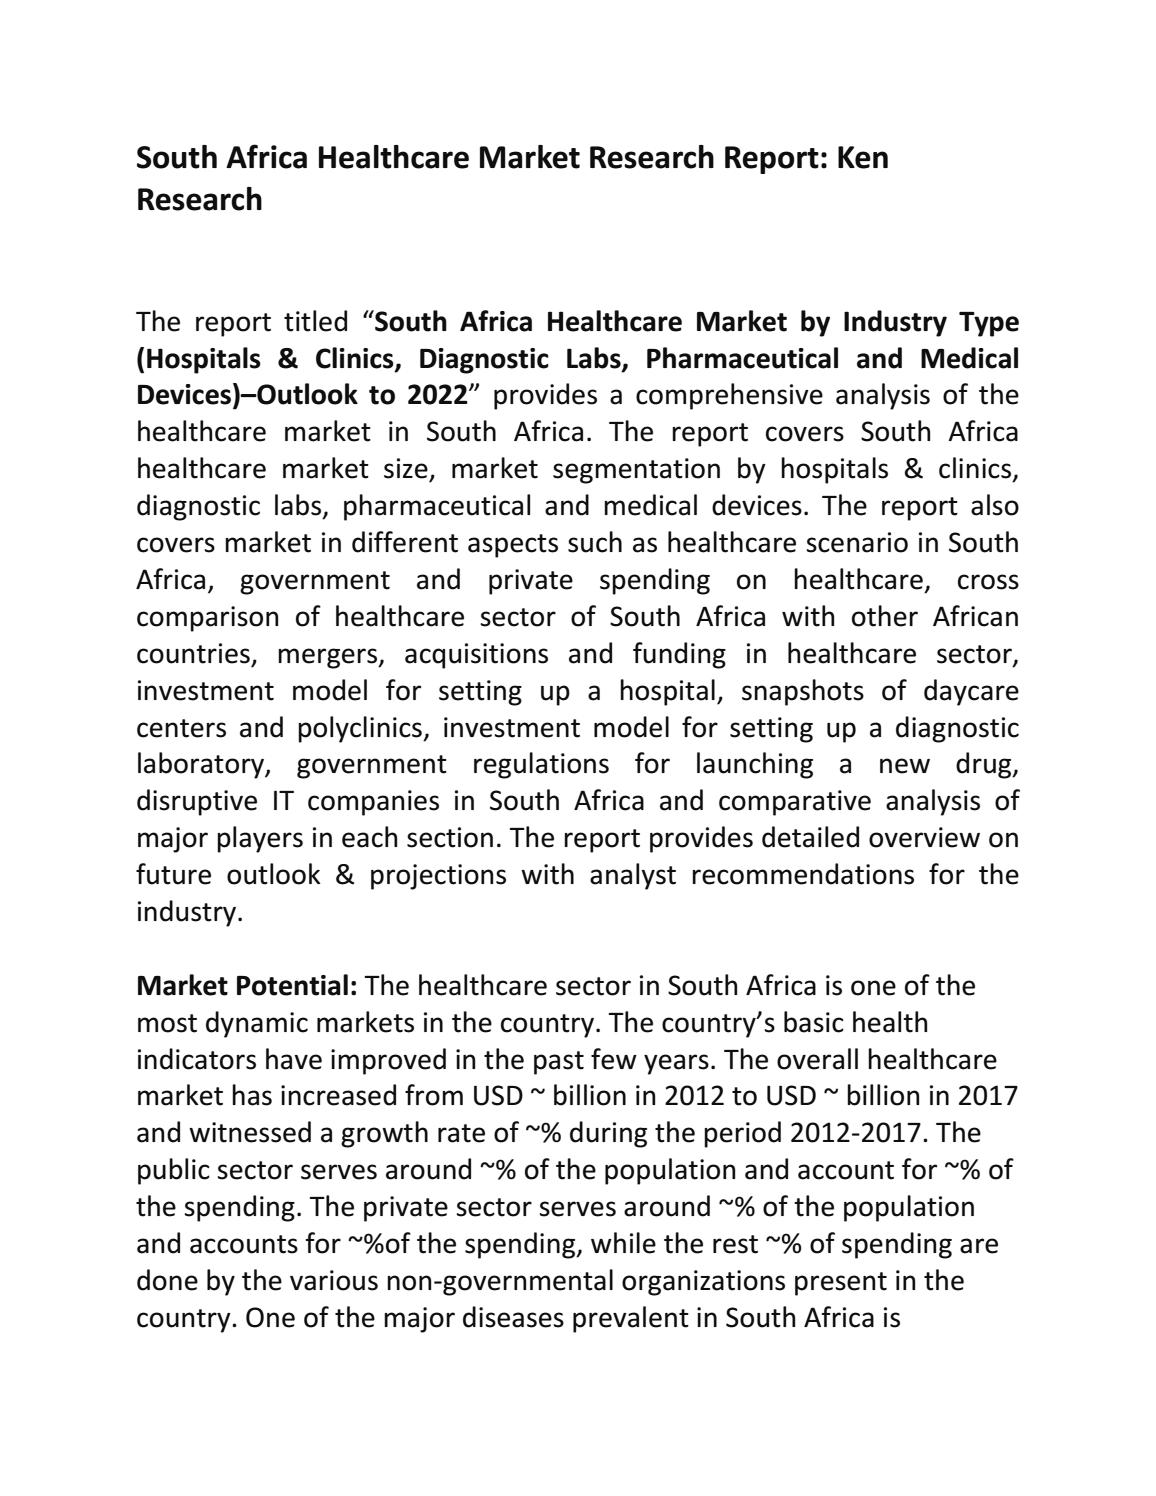 South Africa Healthcare Market Research Report: Ken Research